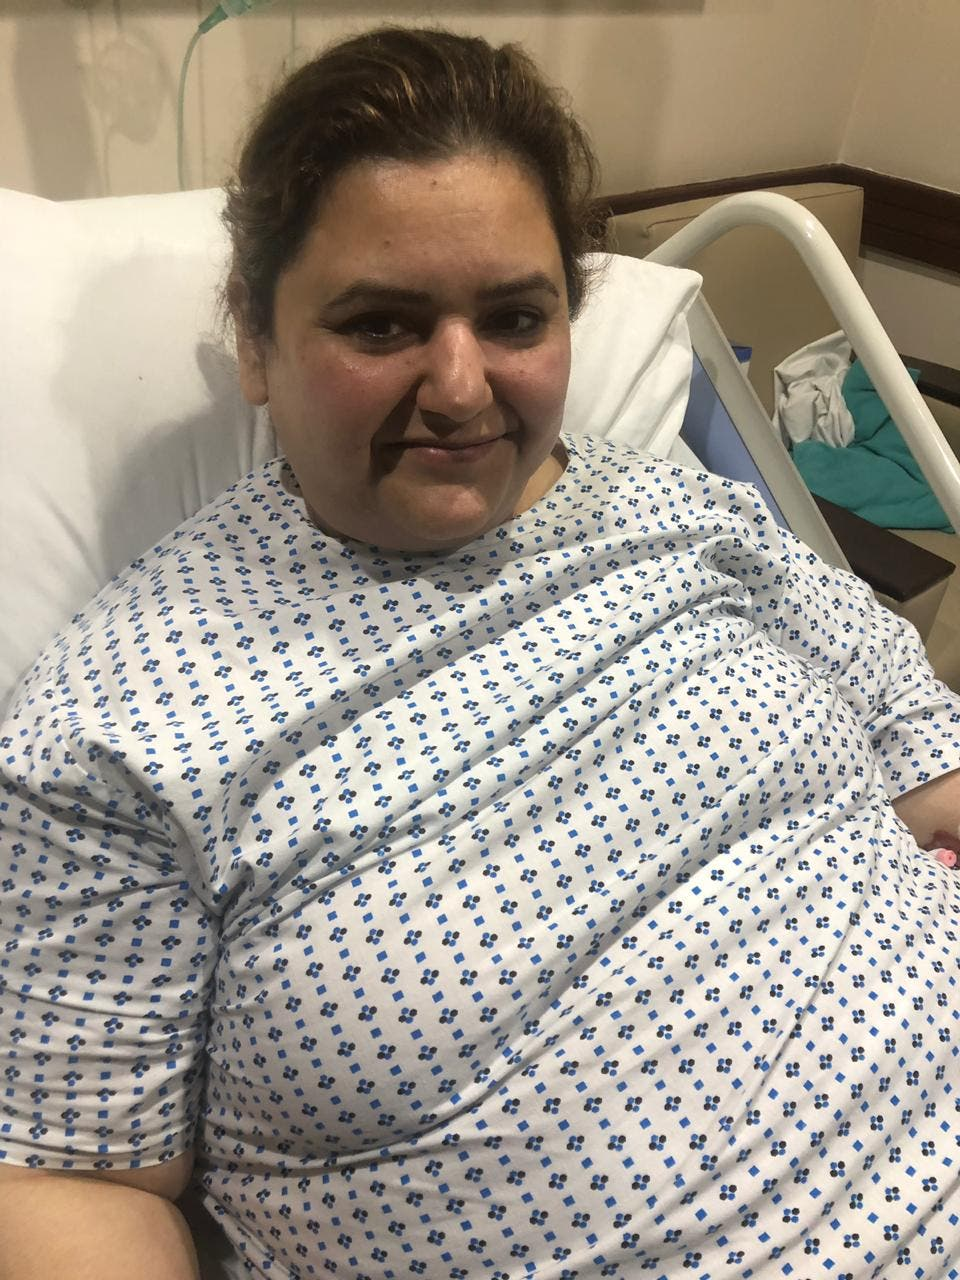 Susan recovering after surgery. (Supplied)